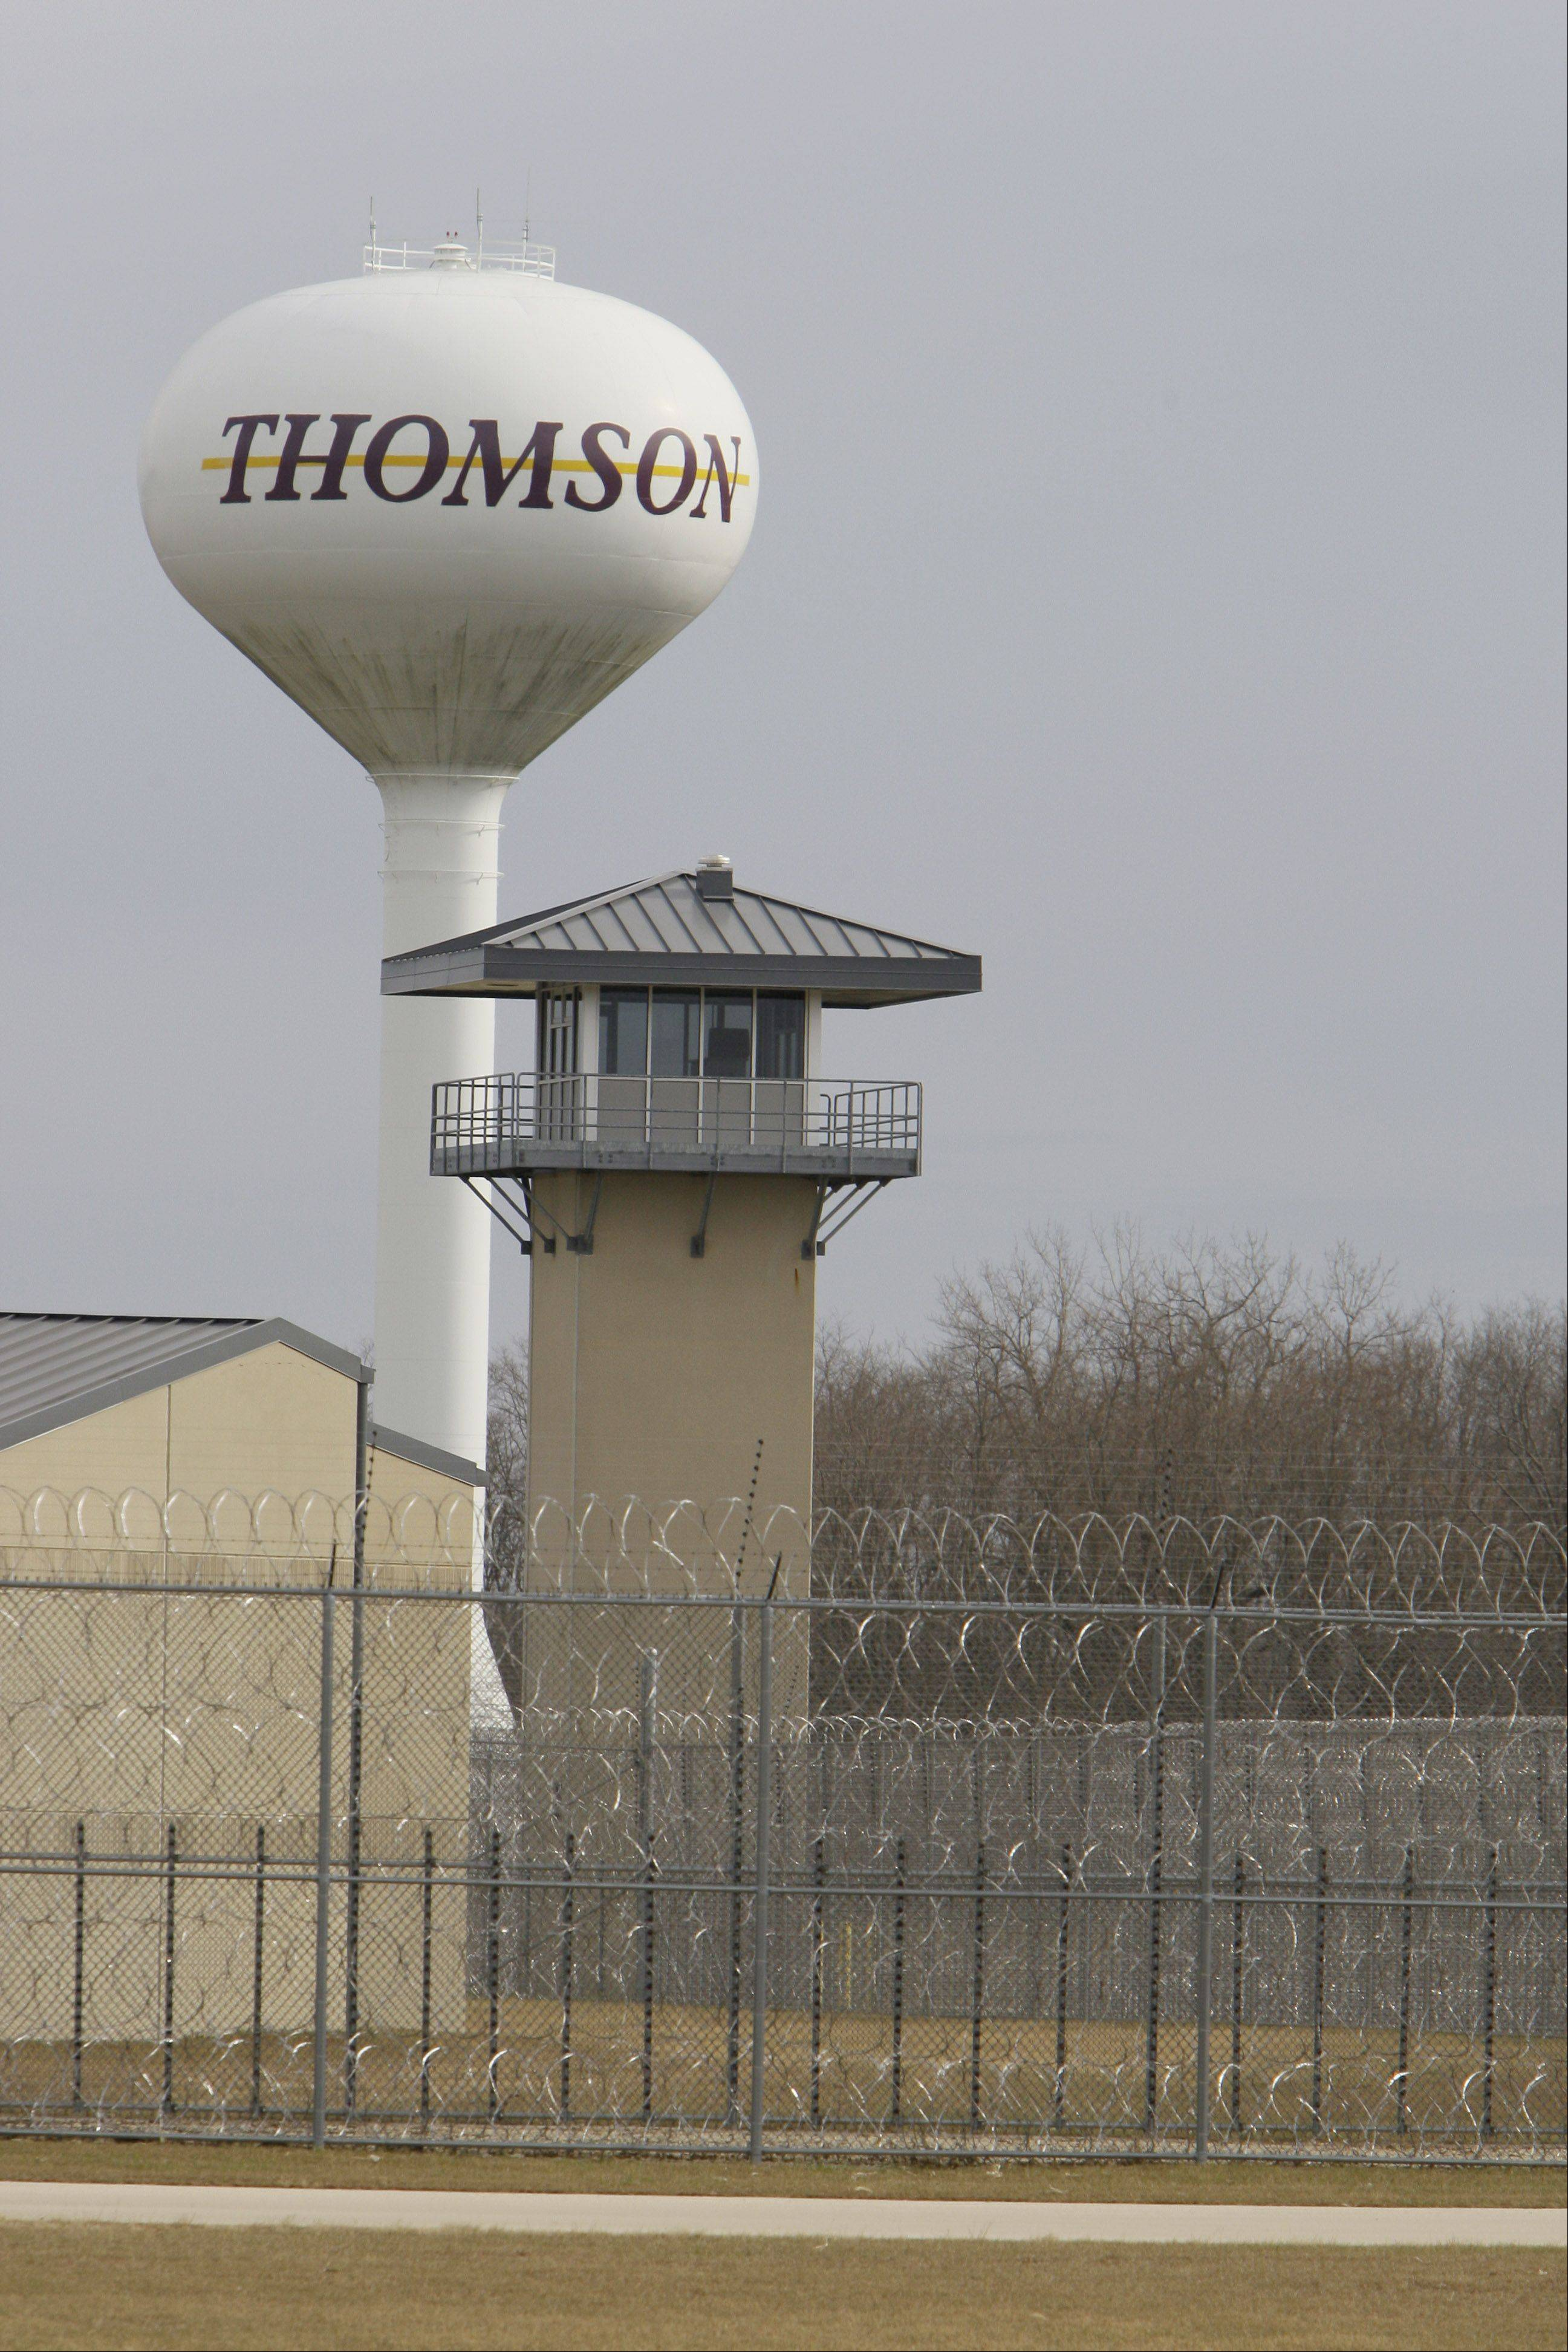 The U.S. Senate�s Appropriations Committee approved funding in July to reactivate Thomson prison.